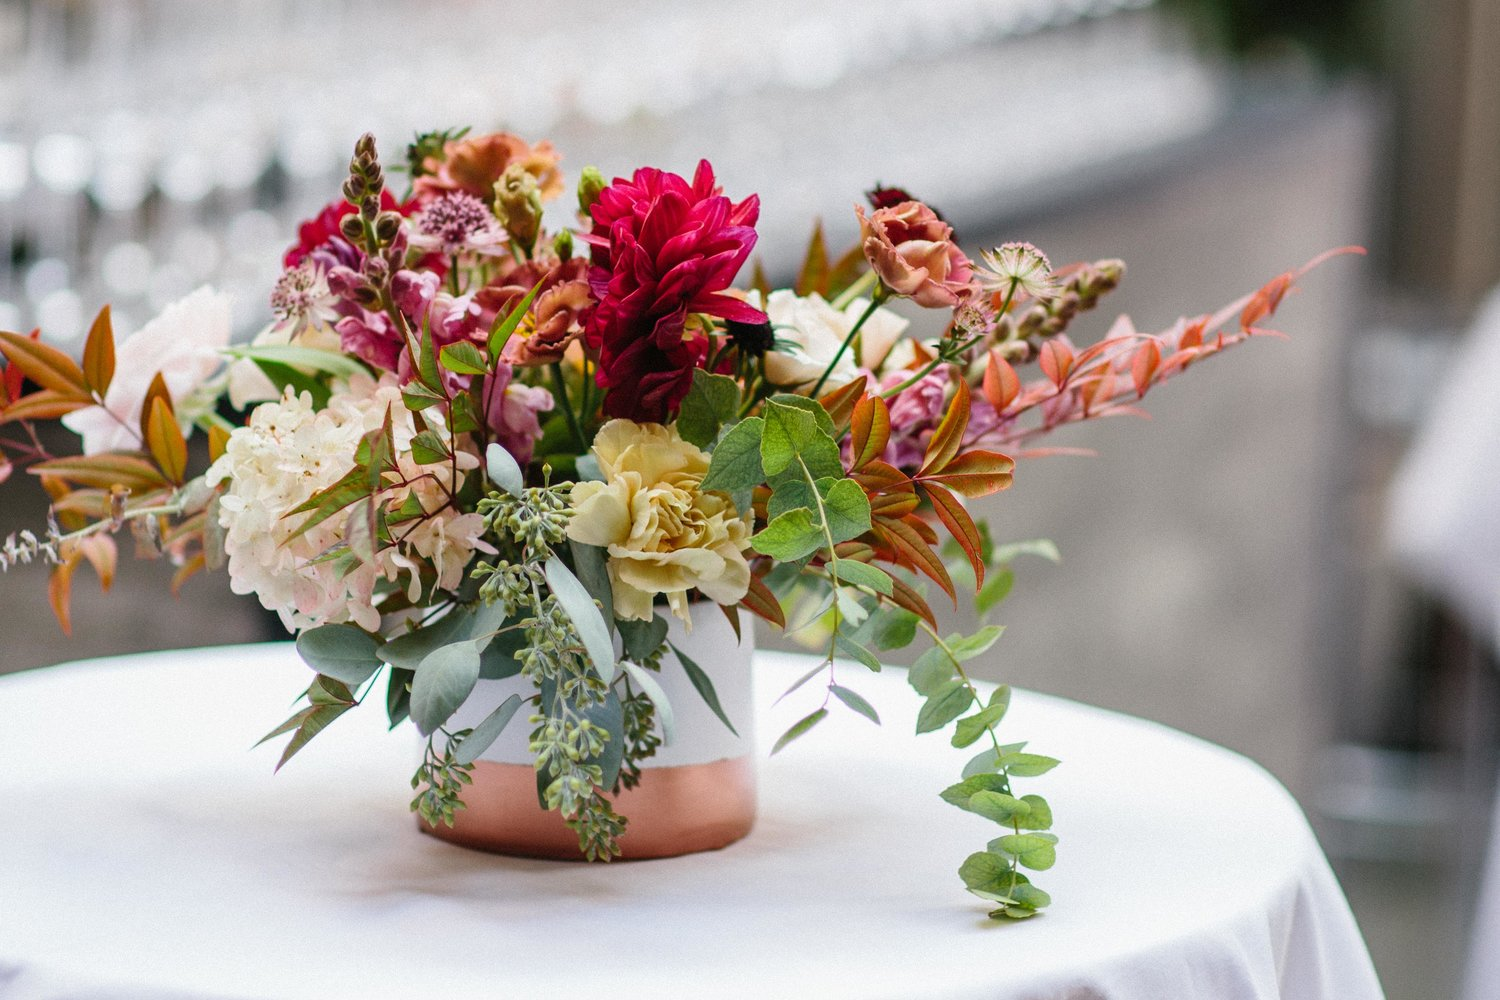 Jill Gaynor Floral Design - Jill holds a special place in our heart, we've collaborated with her a few times and it's always been a design heaven. this gorgeous bouquet she designed is a perfect reflection of her unique expression on blending color and shapes. she always pays close consideration to the vessel as the first step to designing her arrangements, and boy did this one hit the mark! we absolutely love the concrete and copper combination. it ties beautifully with the burnt orange leaves and flowers, le sigh, flowers are just so damn beautiful.